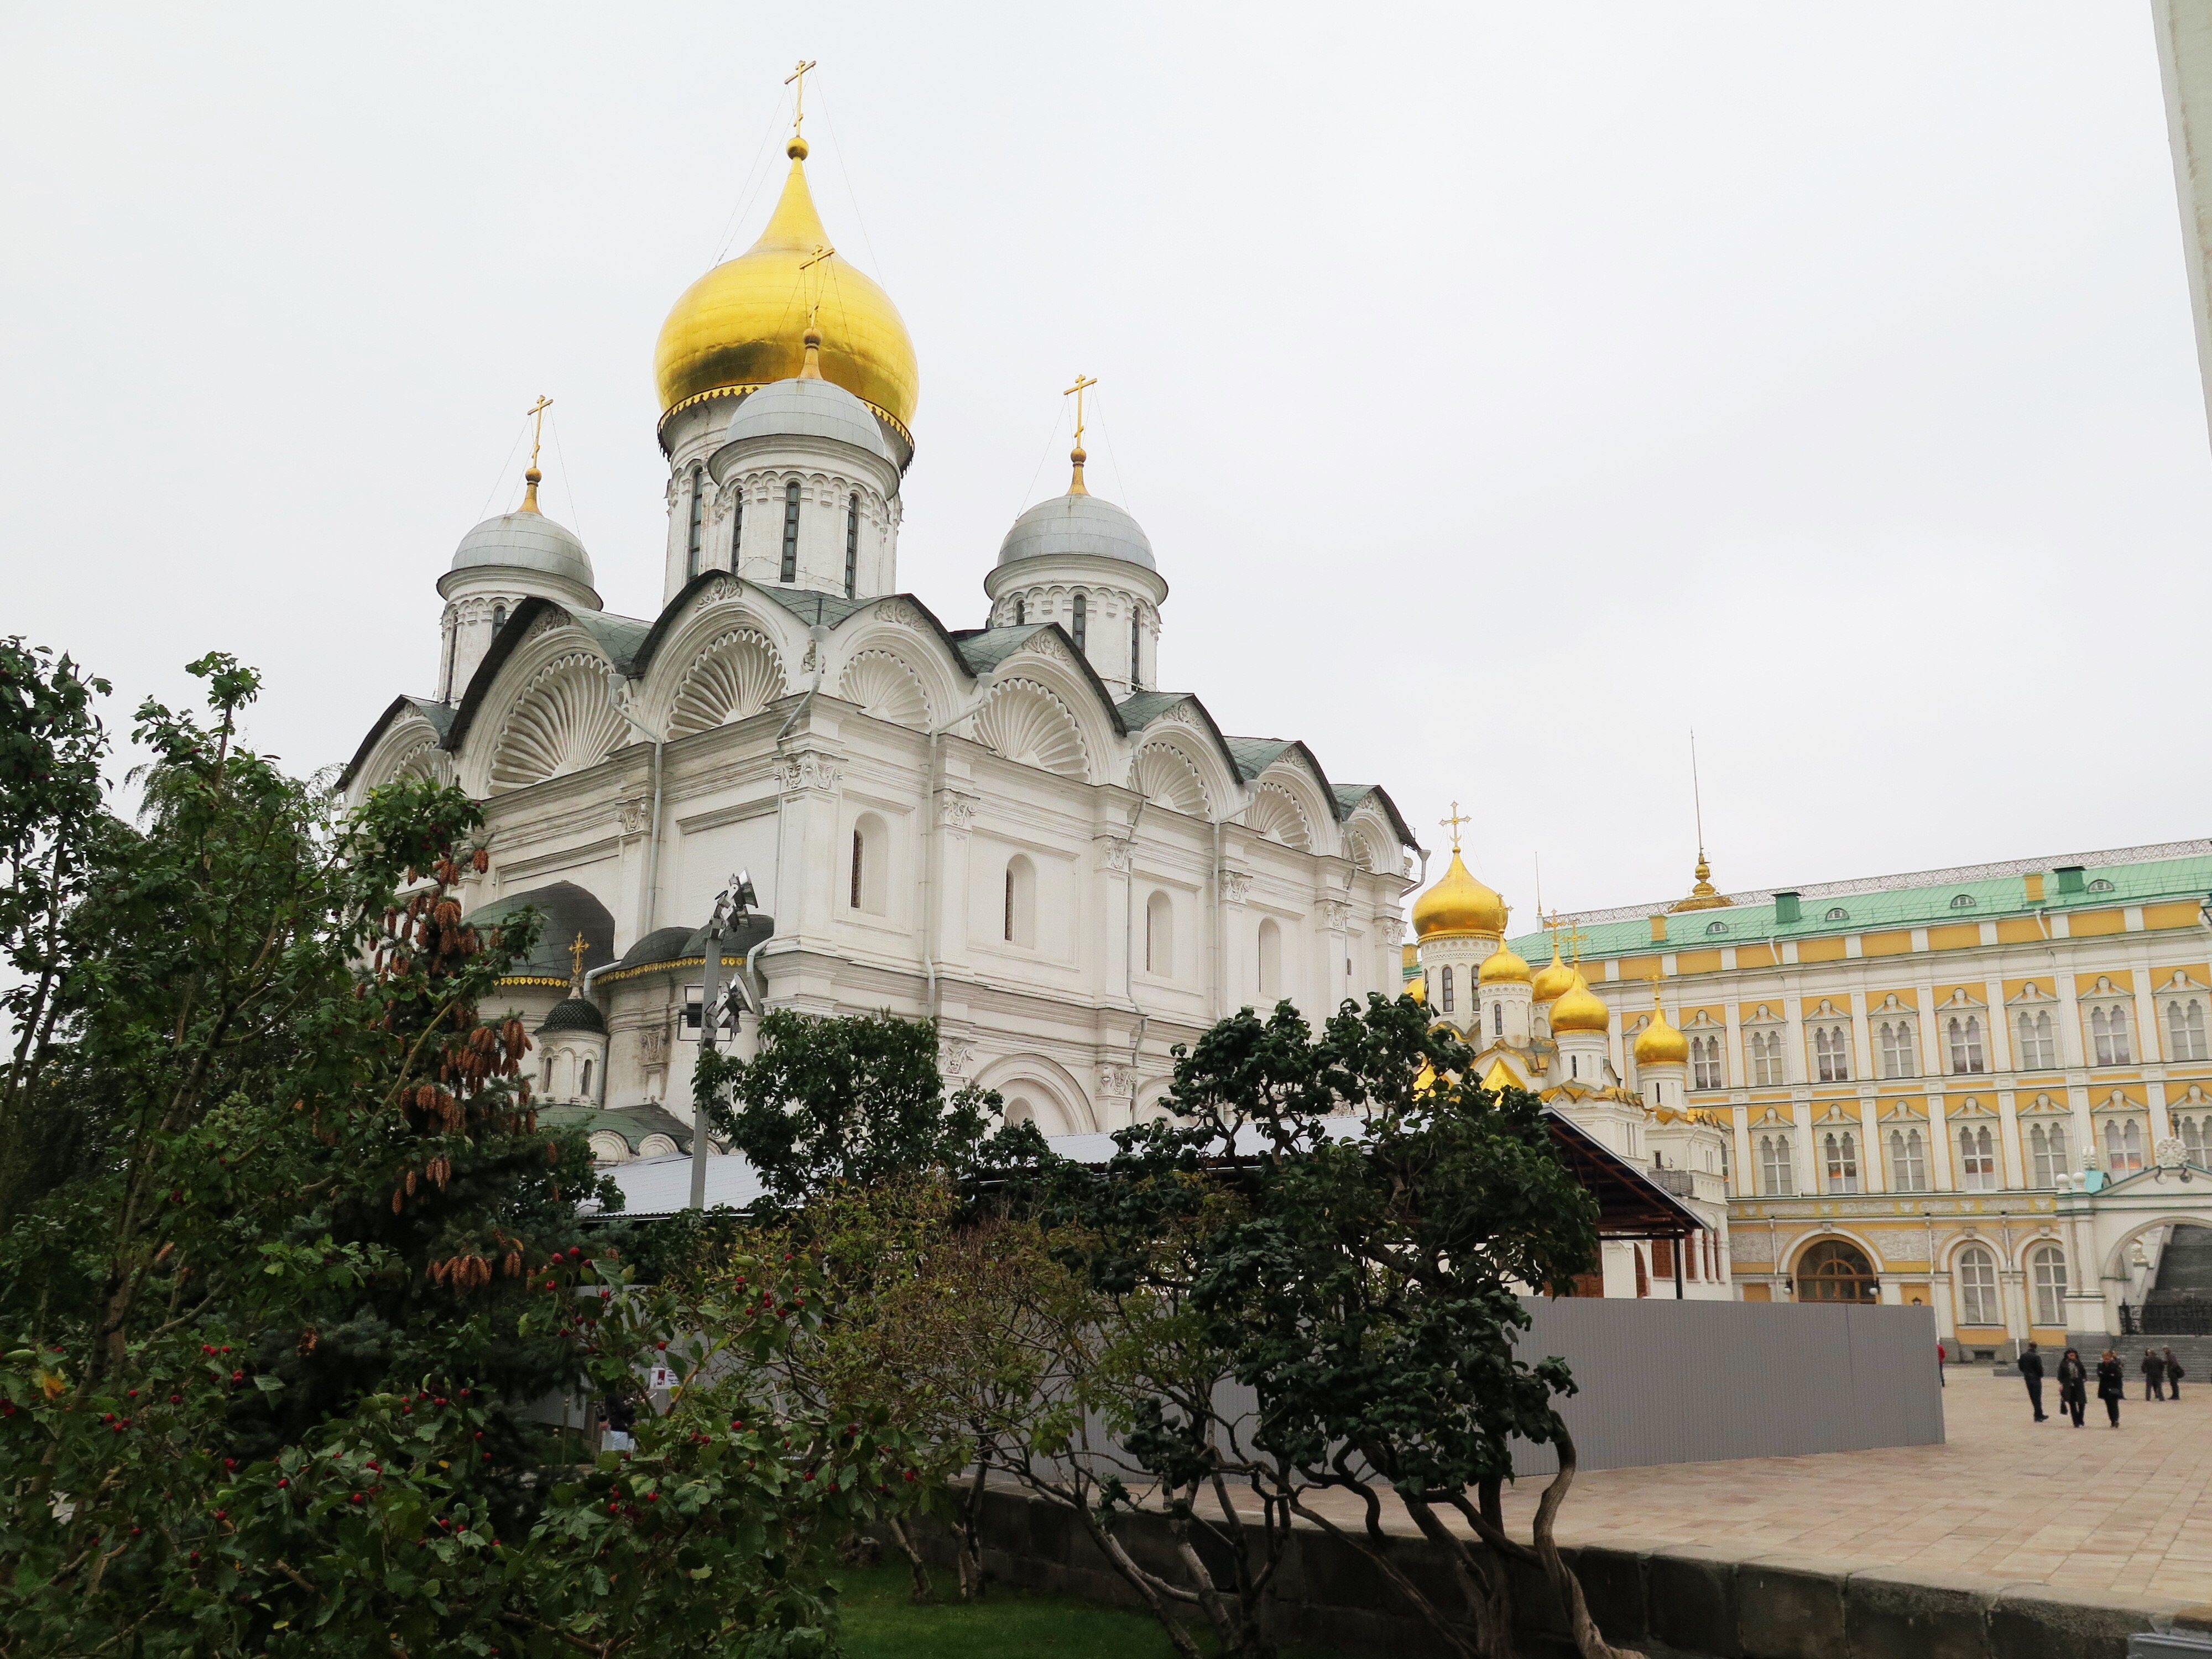 One of the churches inside the Kremlin complex. I could look up which one it is, but I'm feeling lazy.